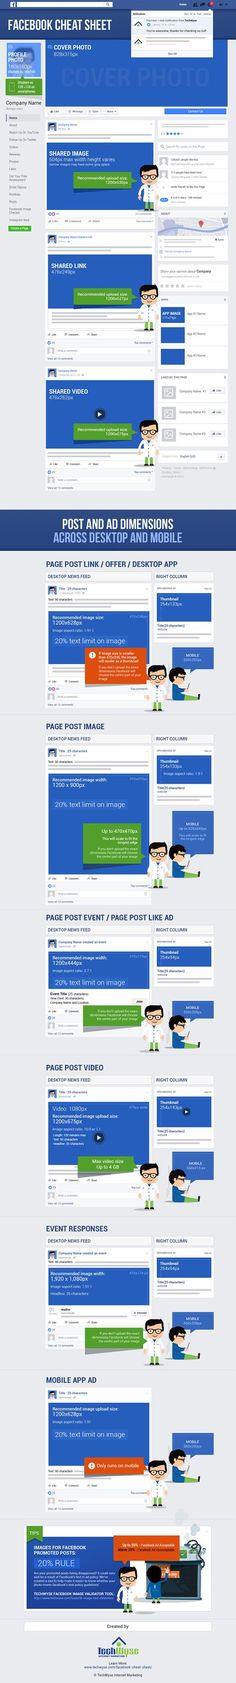 The 2017 Facebook Image Sizes Cheat Sheet [Infographic] | Social Media Today